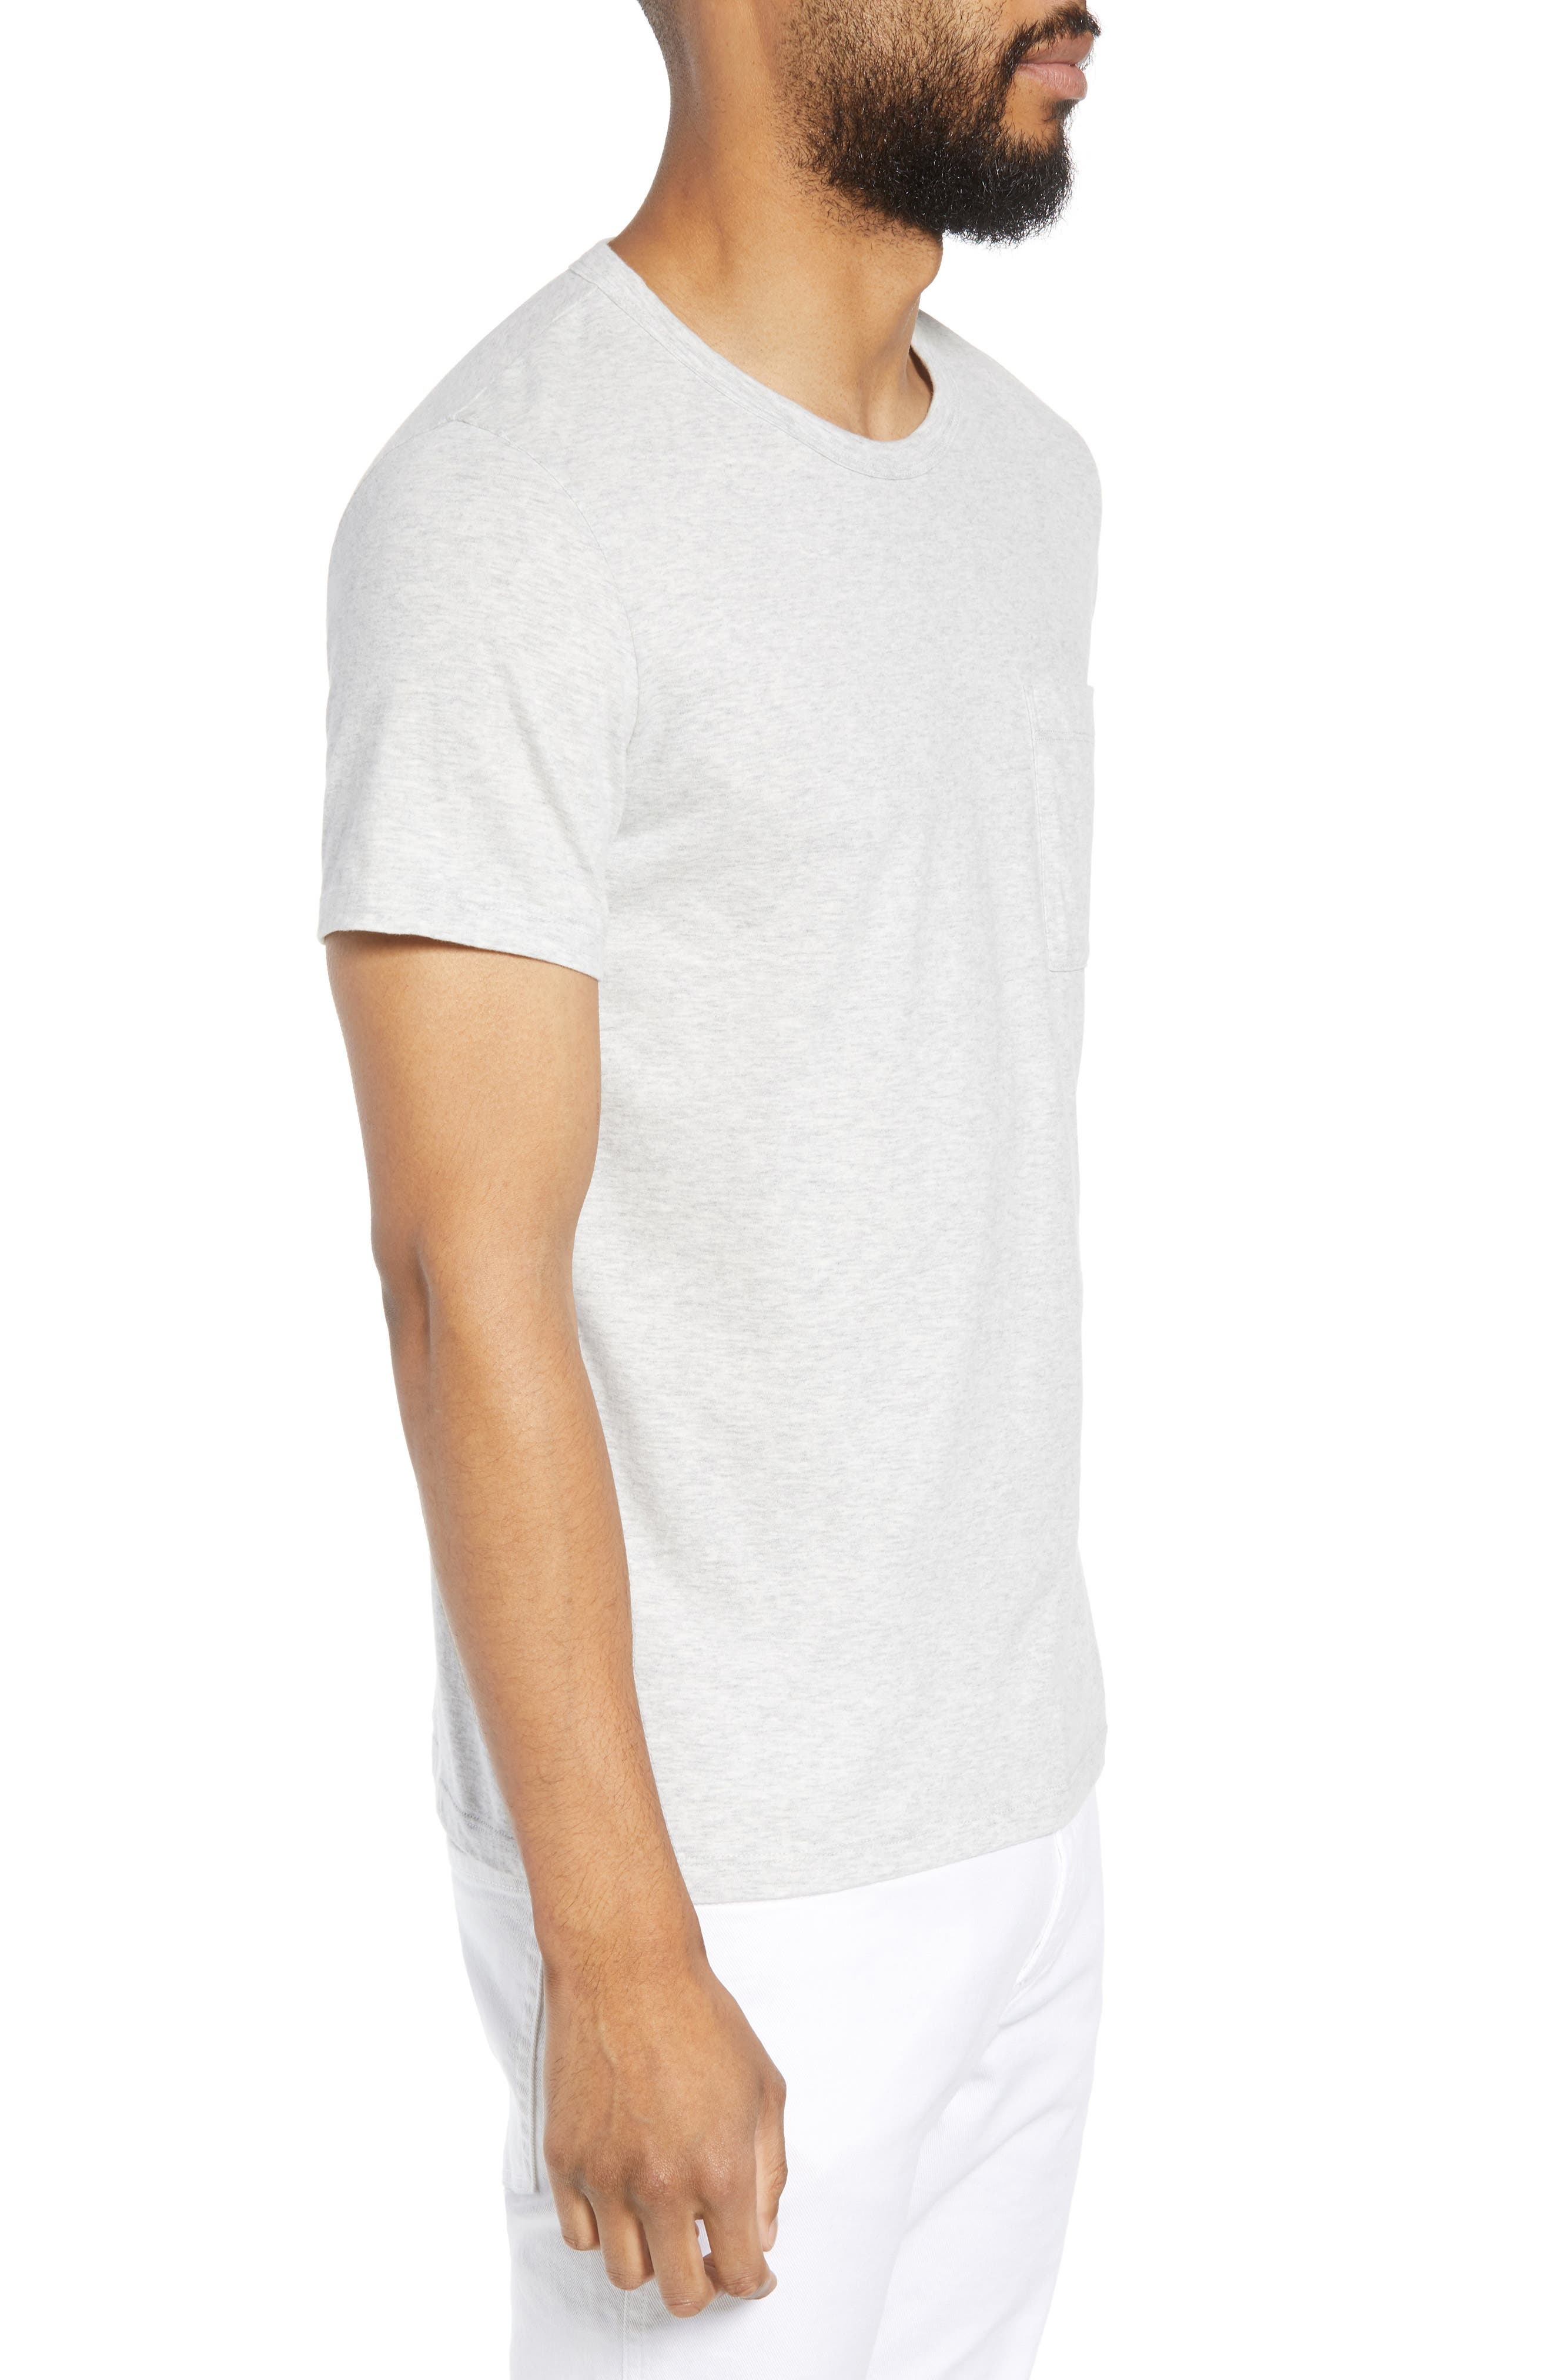 THEORY,                             Essential Pocket T-Shirt,                             Alternate thumbnail 3, color,                             020